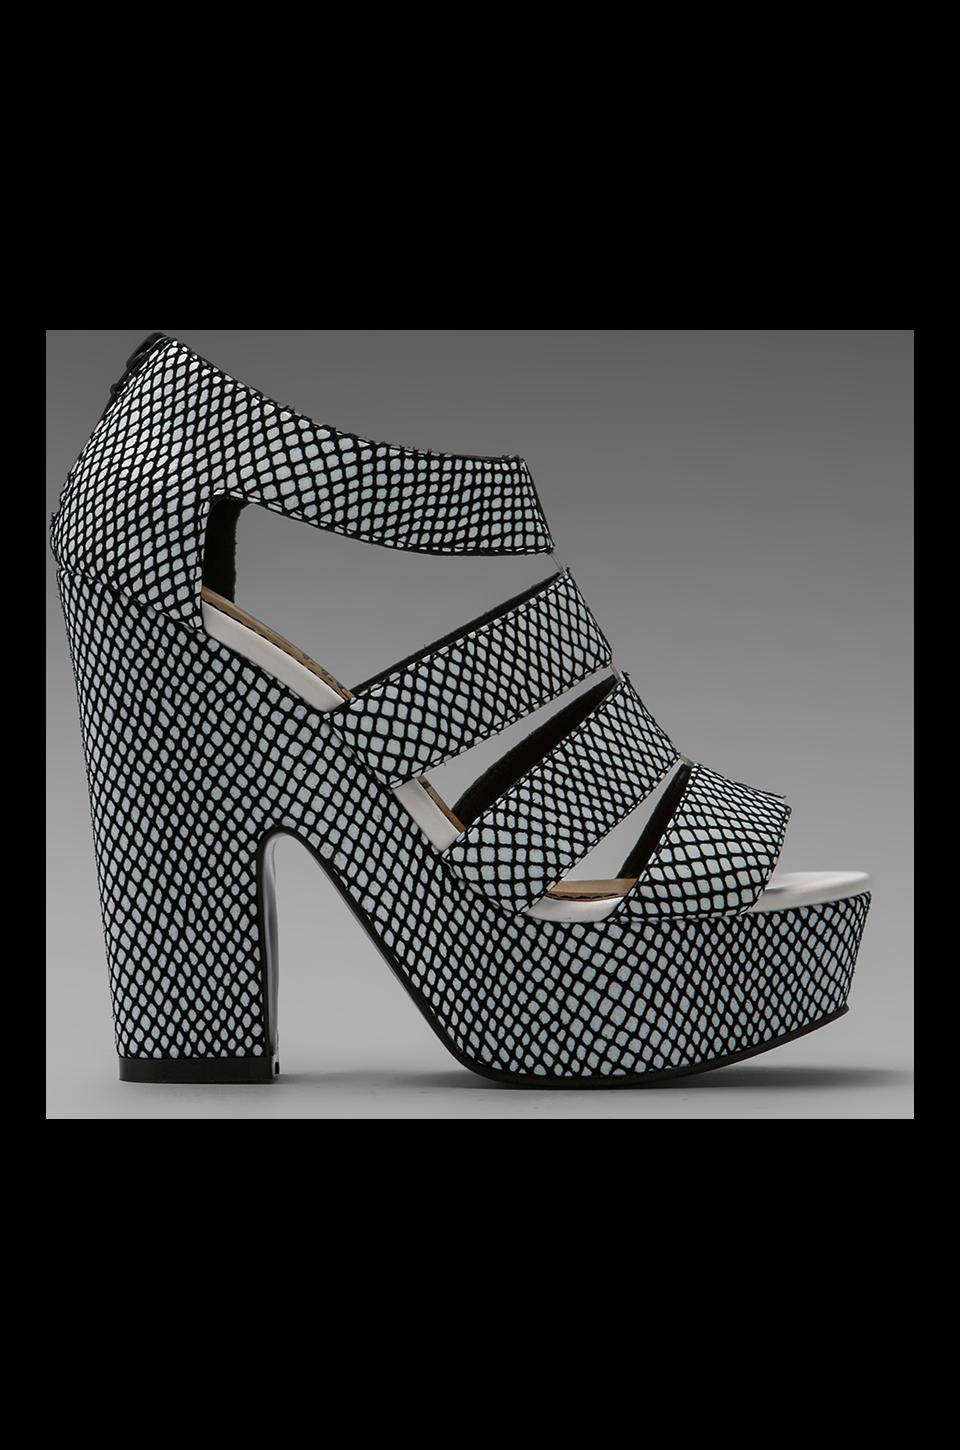 Nanette Lepore Addicted To You Heel in White Embossed Python